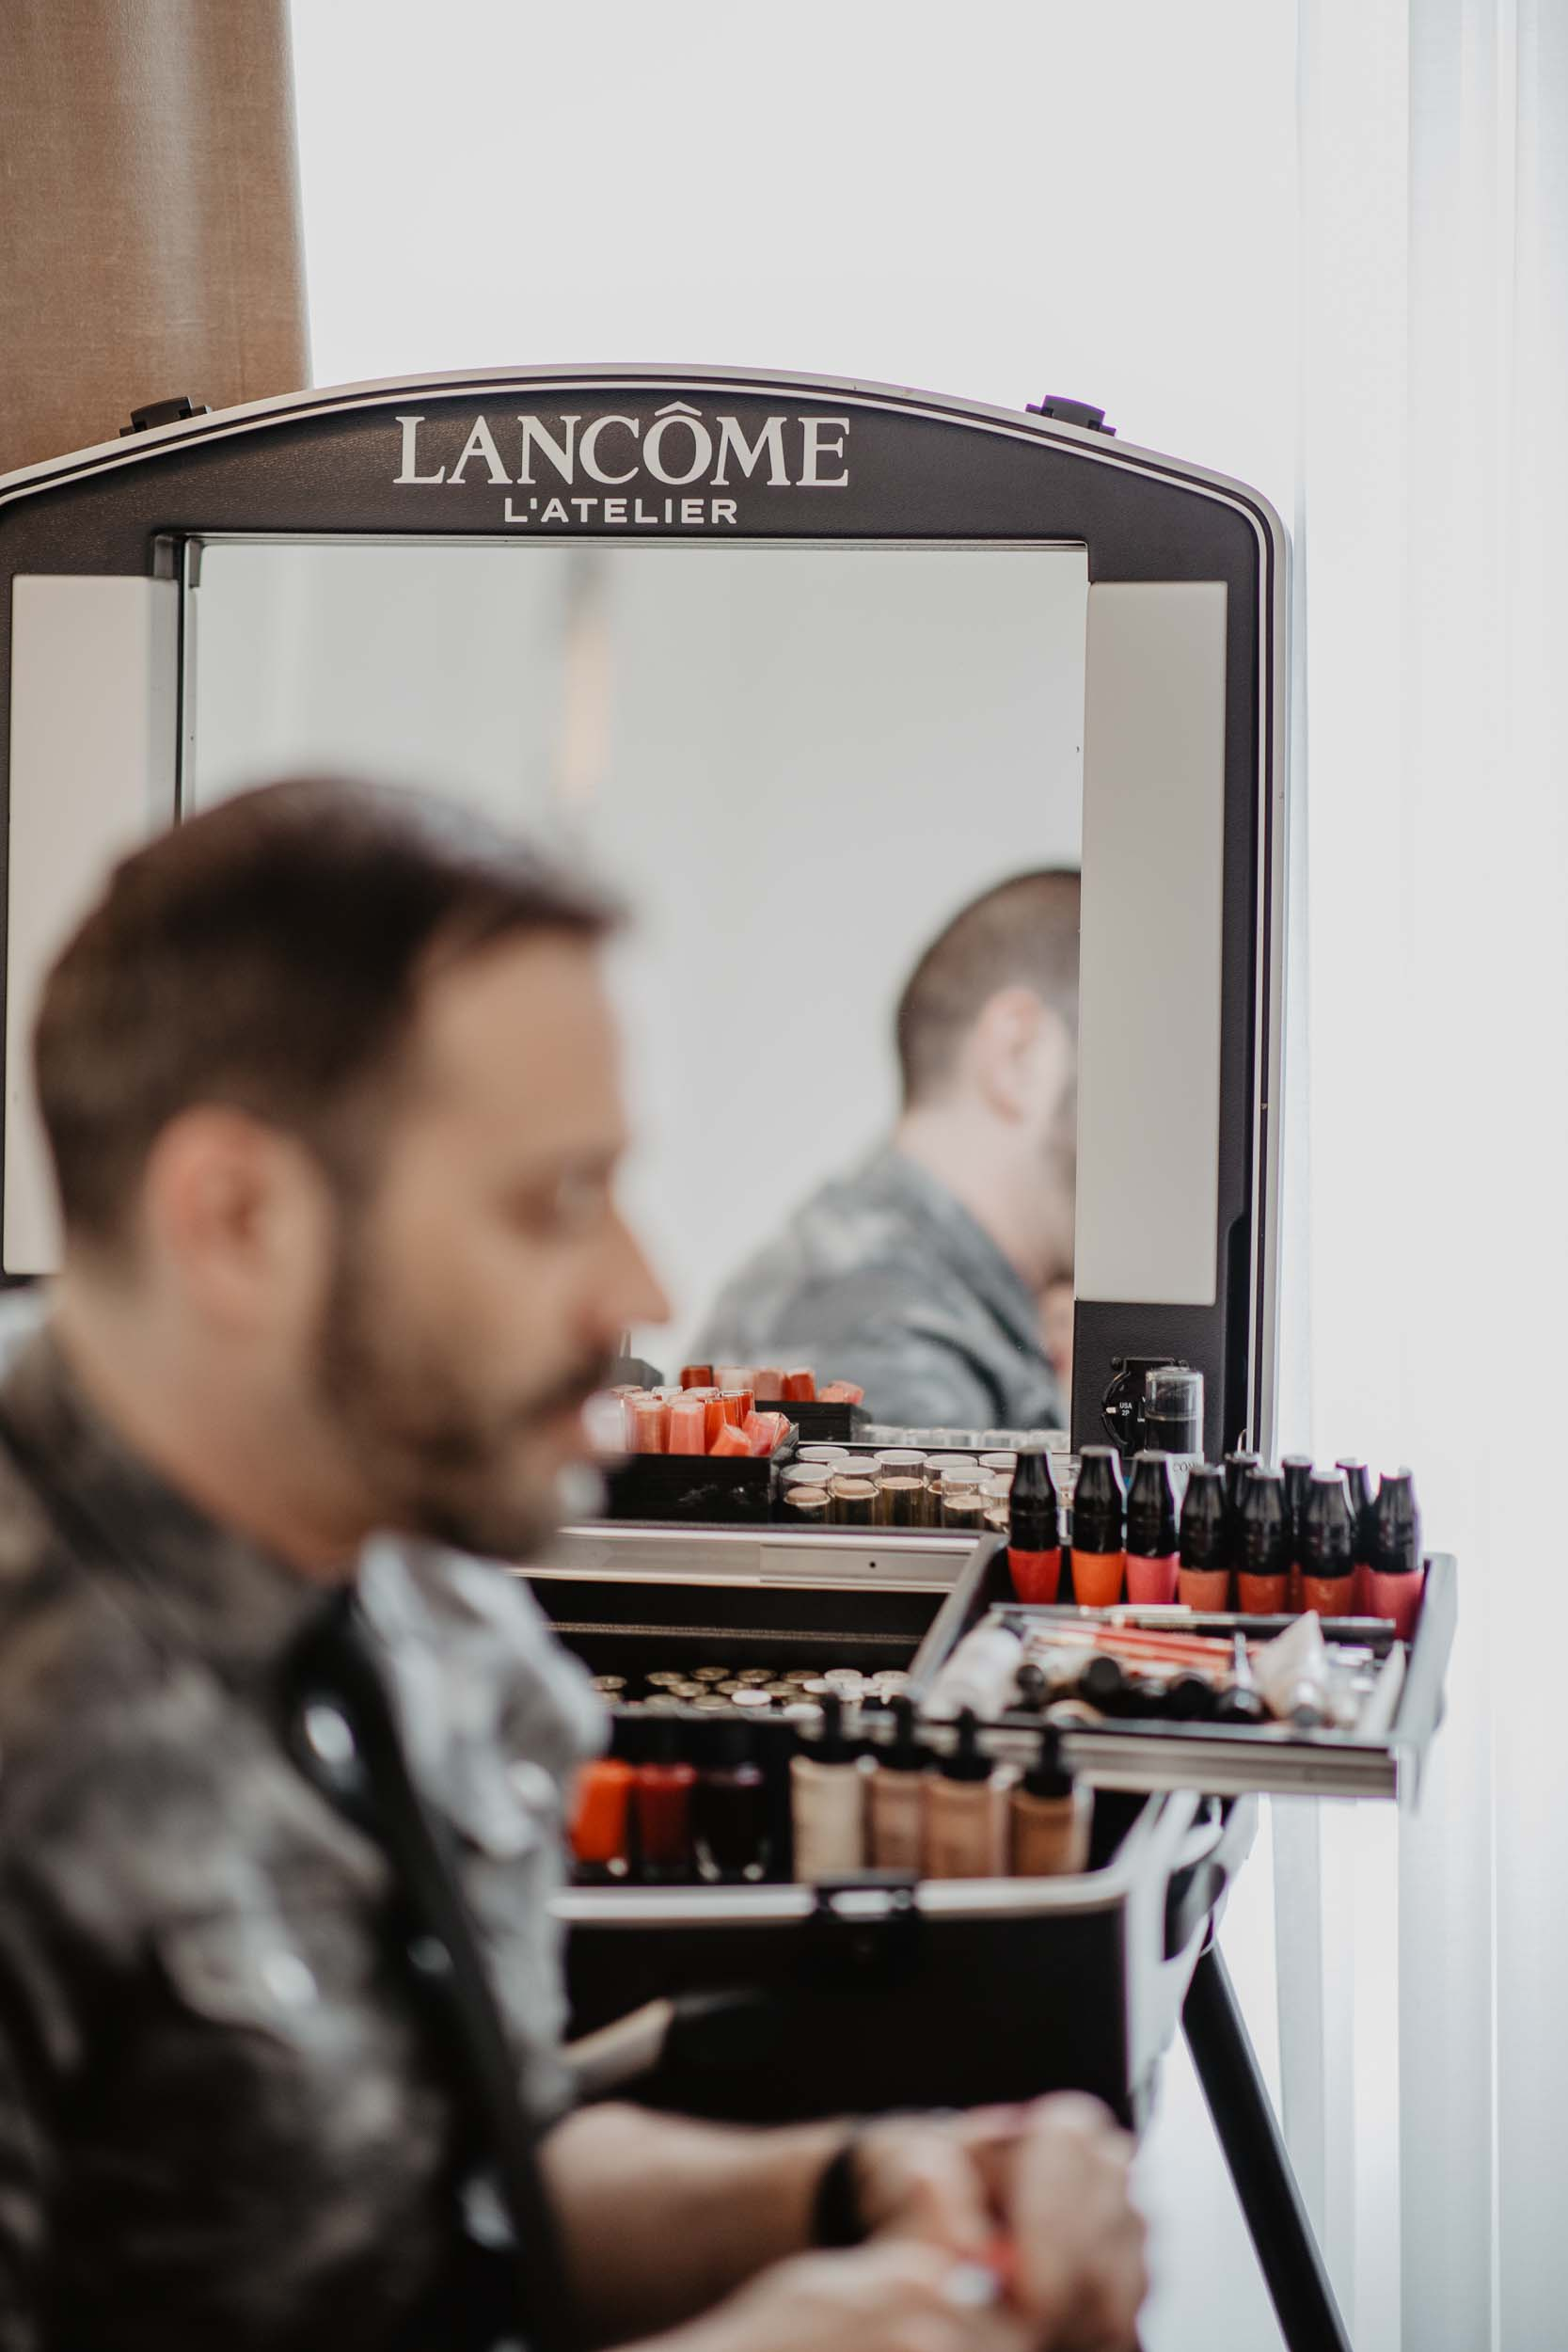 Beauty: Absolut Beautiful x Lancôme Cover Shooting | you rock my life